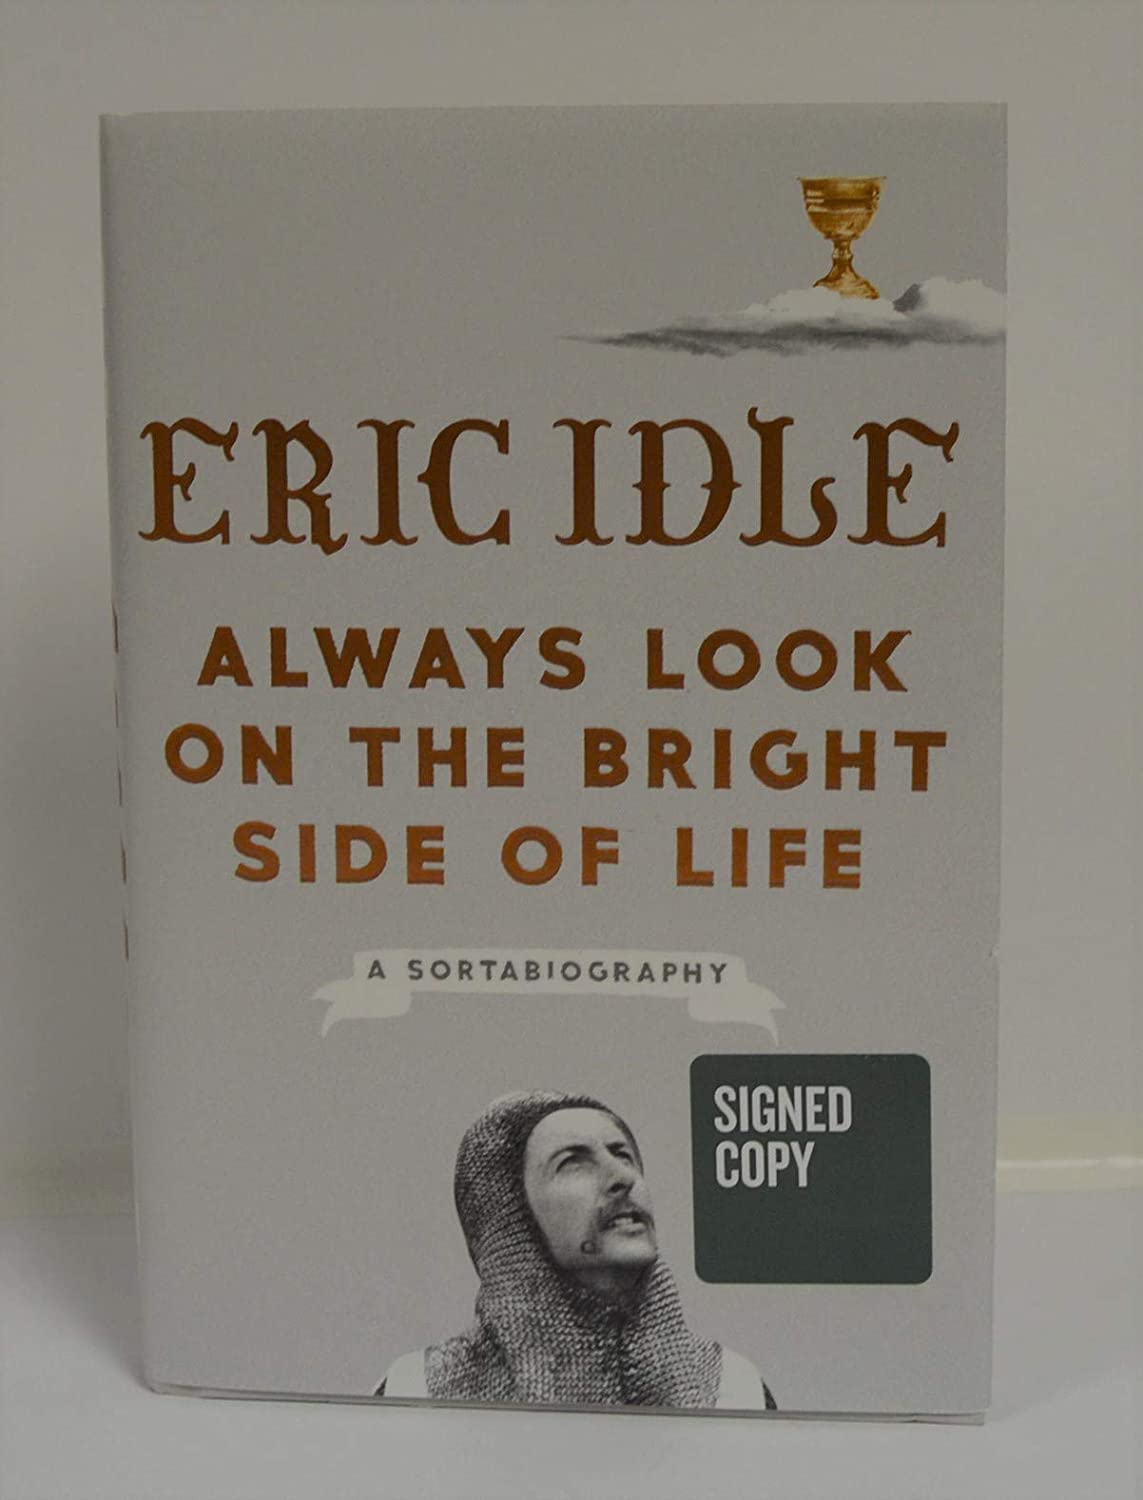 ERIC IDLE signed'Always Look on the Bright Side of Life: A Sortabiography' (Hardcover) Book FIRST EDITION